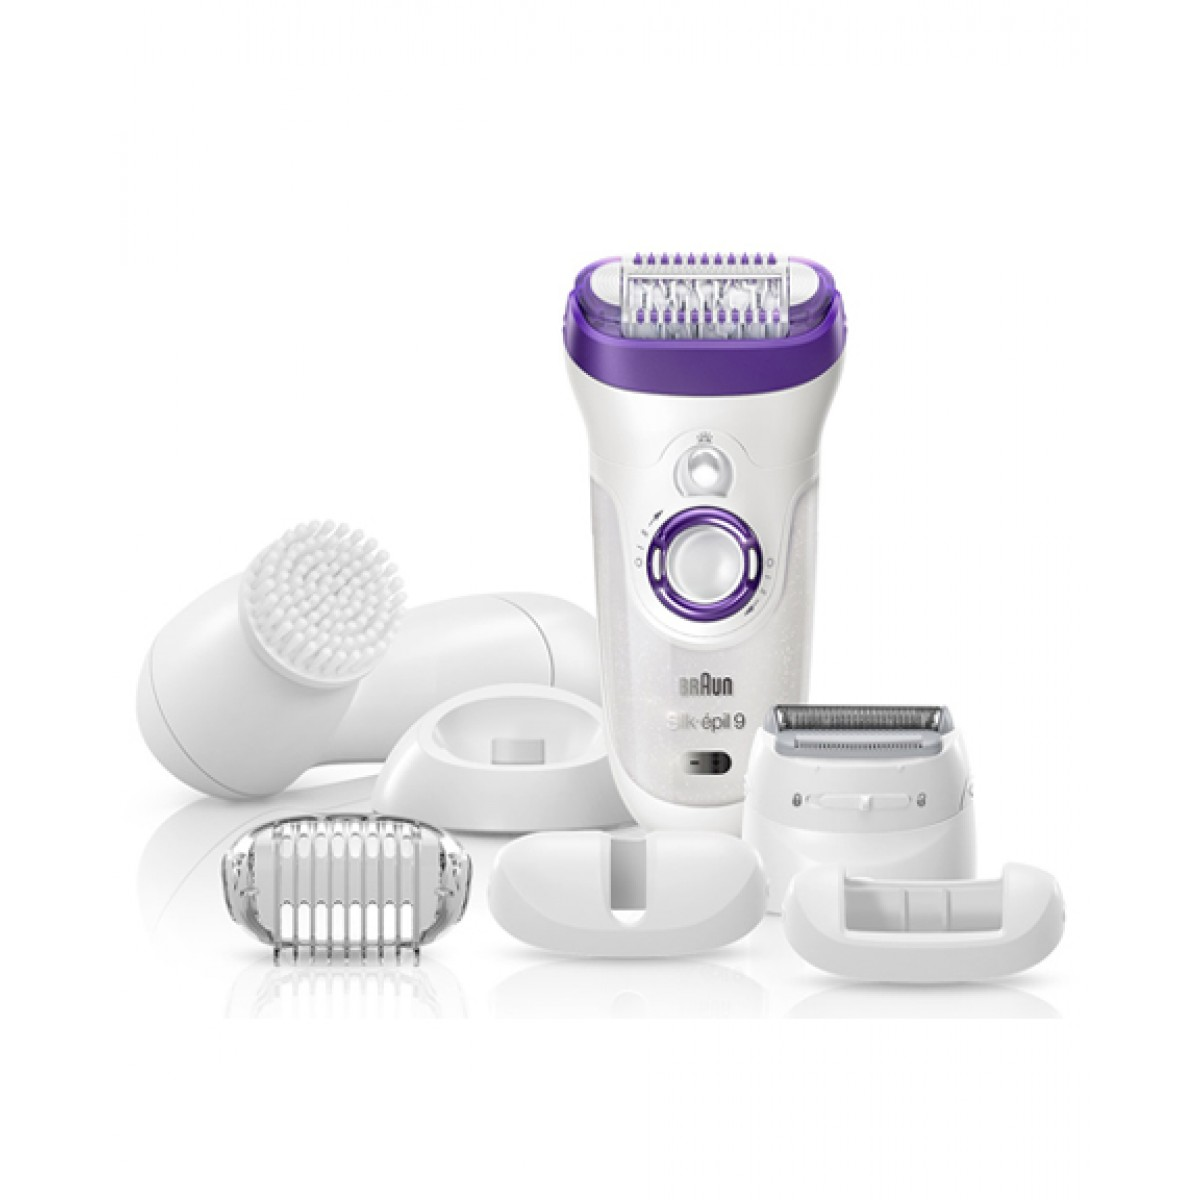 Braun Epilator with Facial Cleansing Brush Price in Pakistan  e369a9f98807